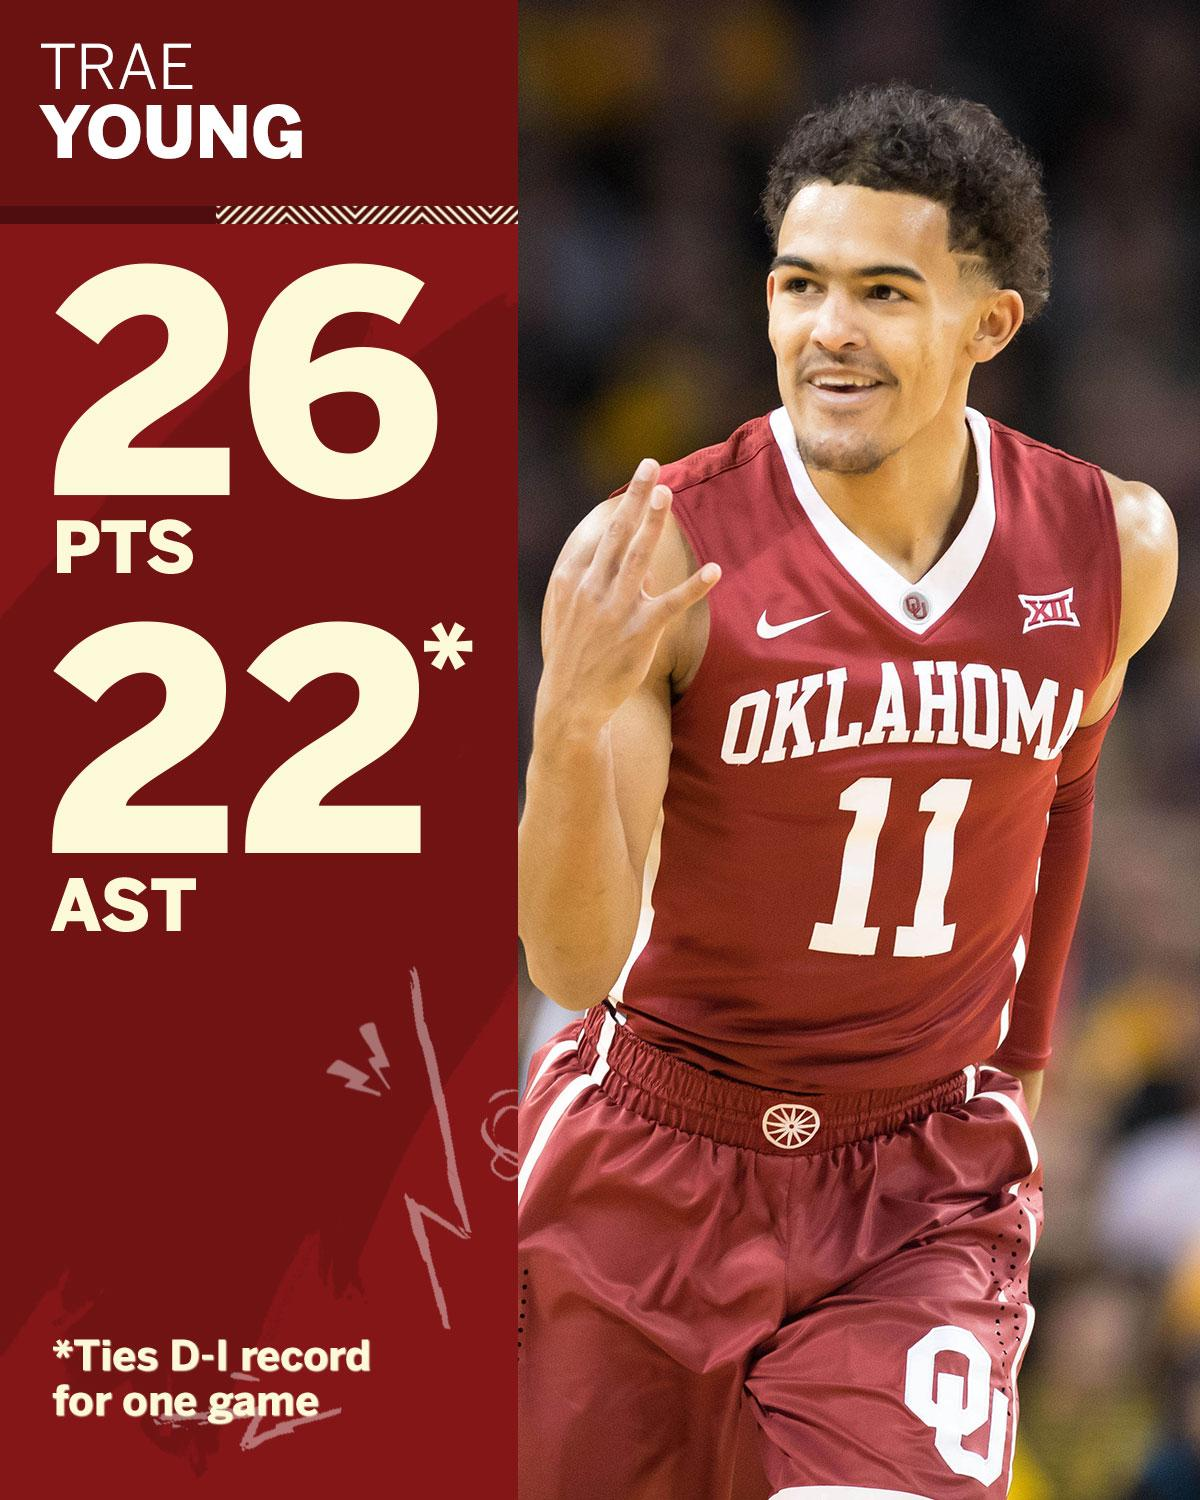 Get to know the name Trae Young. https://t.co/ZMTufd9Ulo